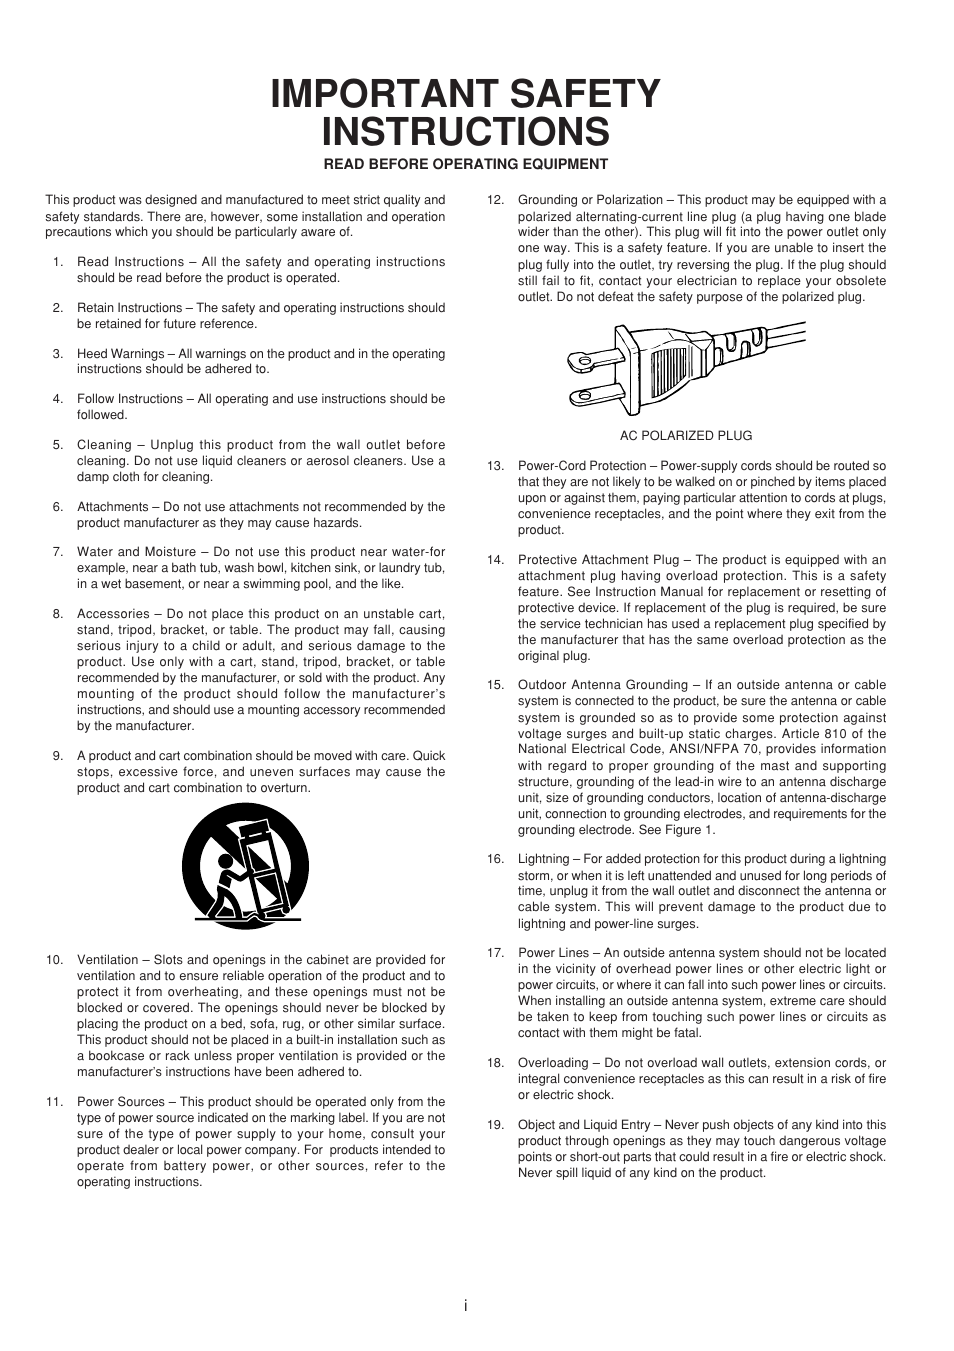 Important Safety Instructions Marantz Sr5300 User Manual Page 2